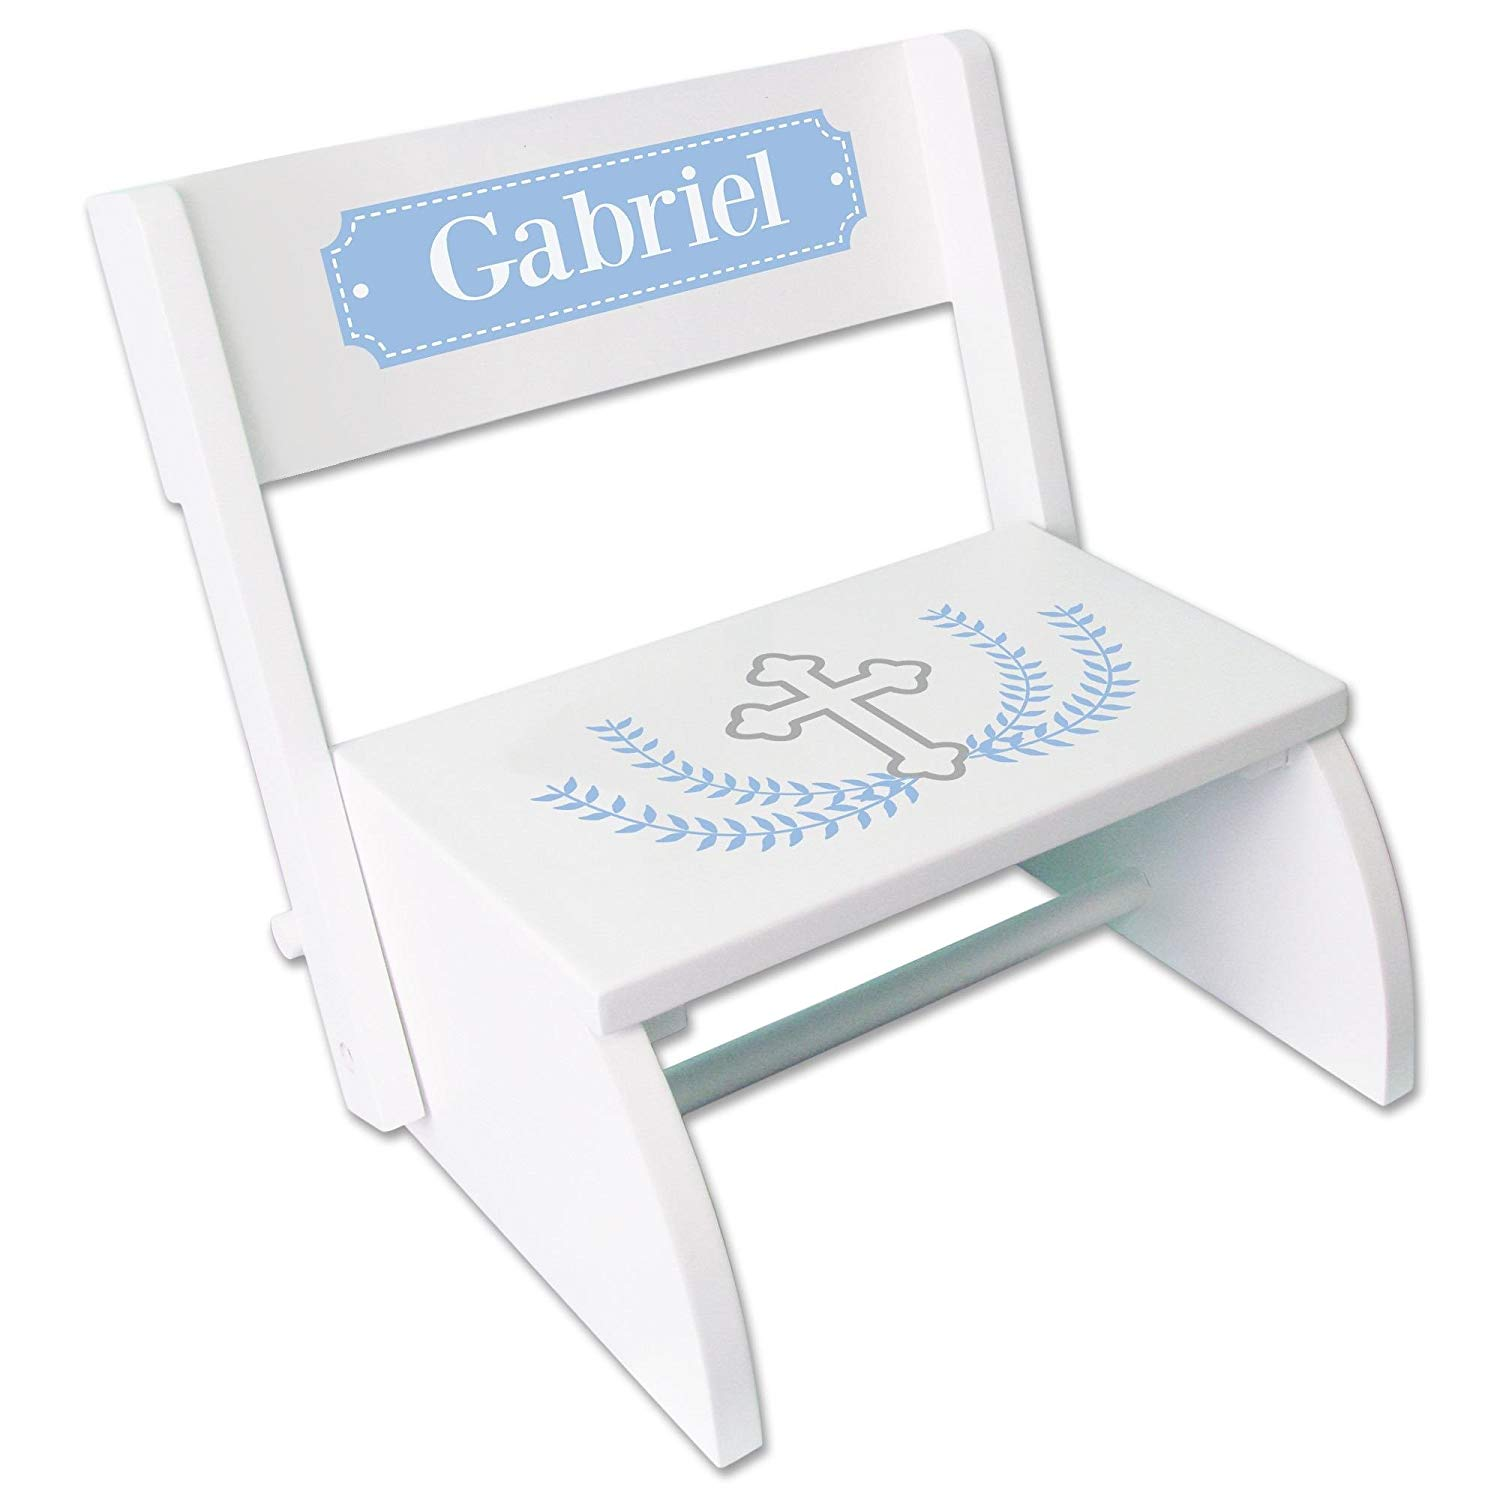 Personalized Cross Garland Light Blue White Wooden Folding Stool and Seat